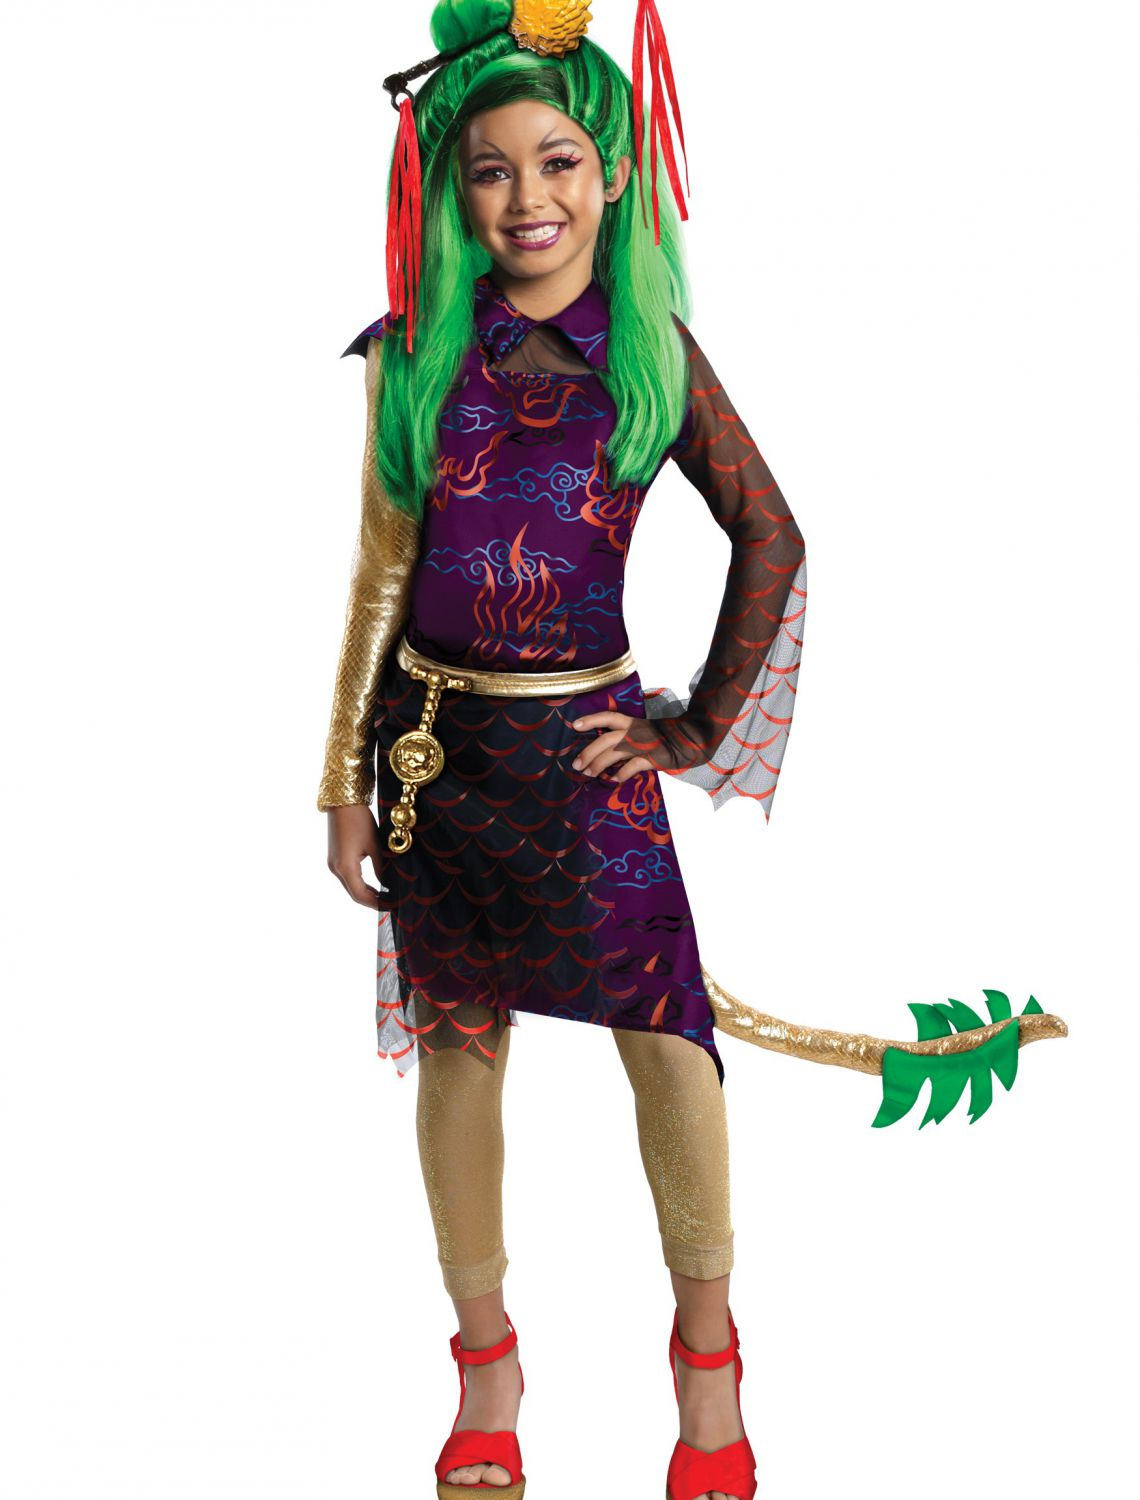 Movie Character Costumes - Page 14 of 23 - Halloween Costumes